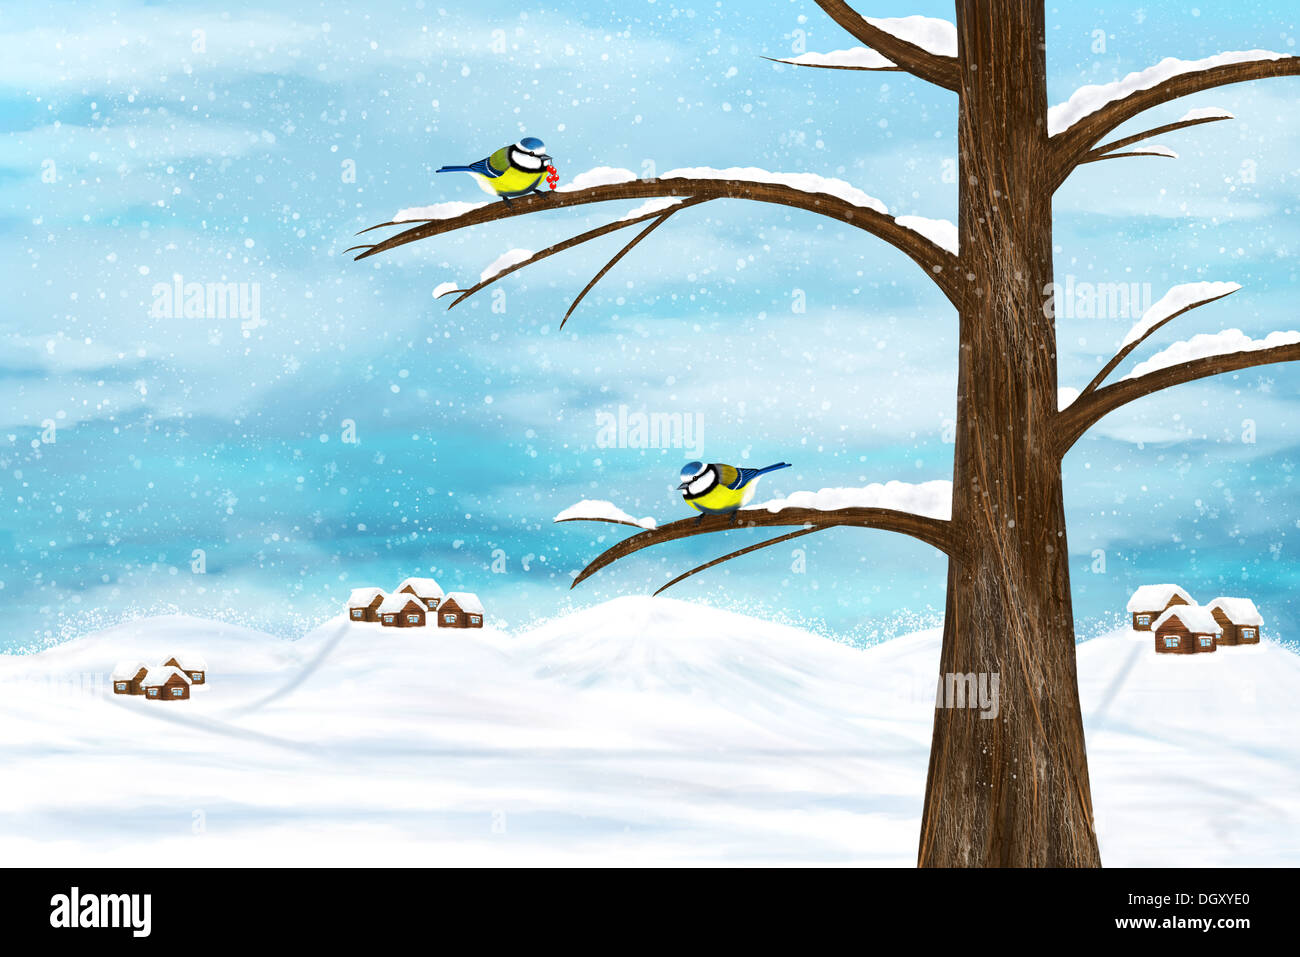 Black capped Chickadee birds on a tree. Winter illustration. - Stock Image